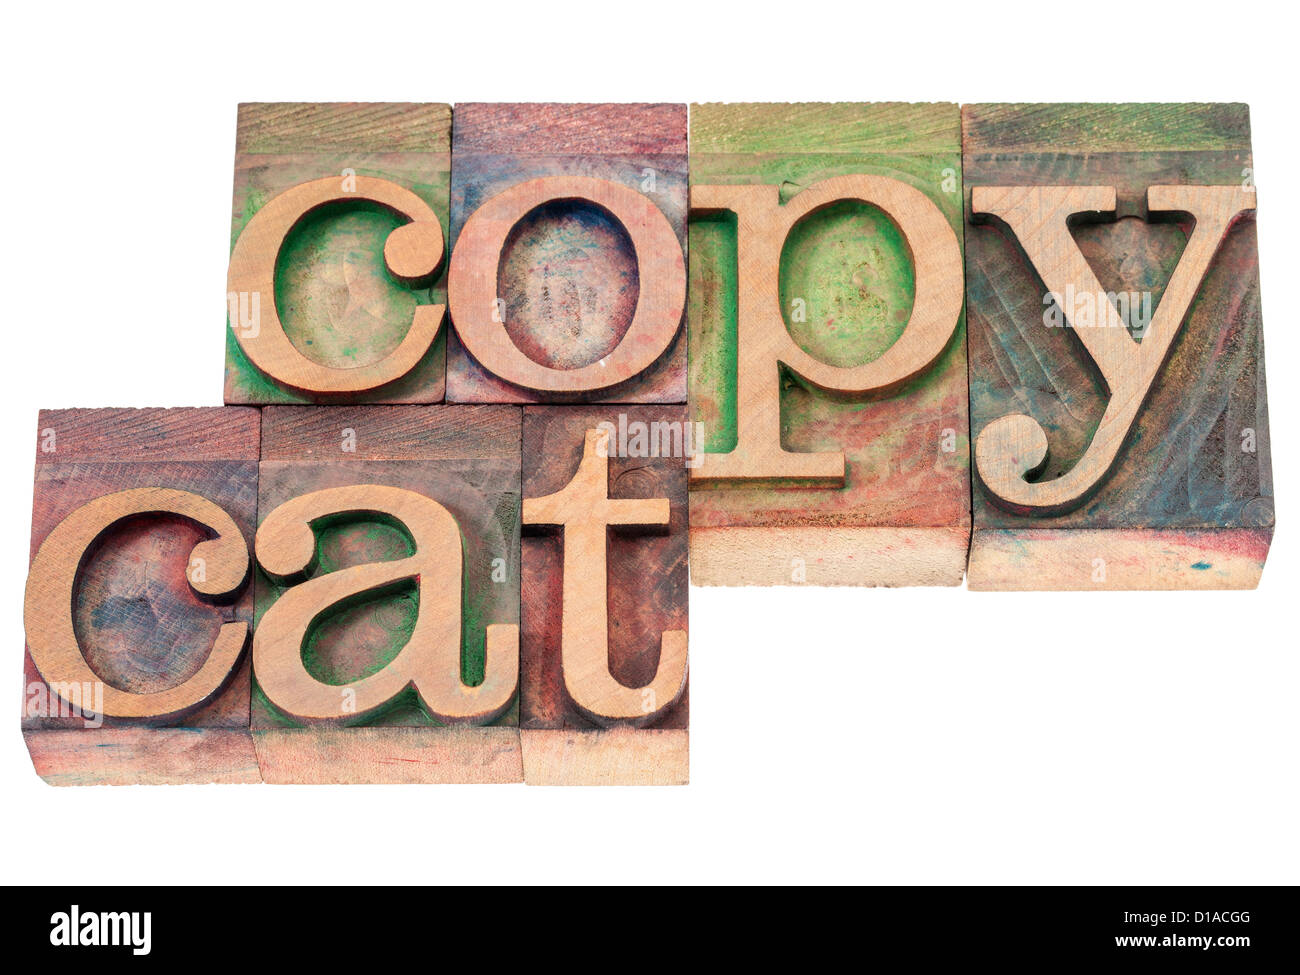 copycat - isolated text in vintage letterpress wood type blocks stained by color inks - Stock Image